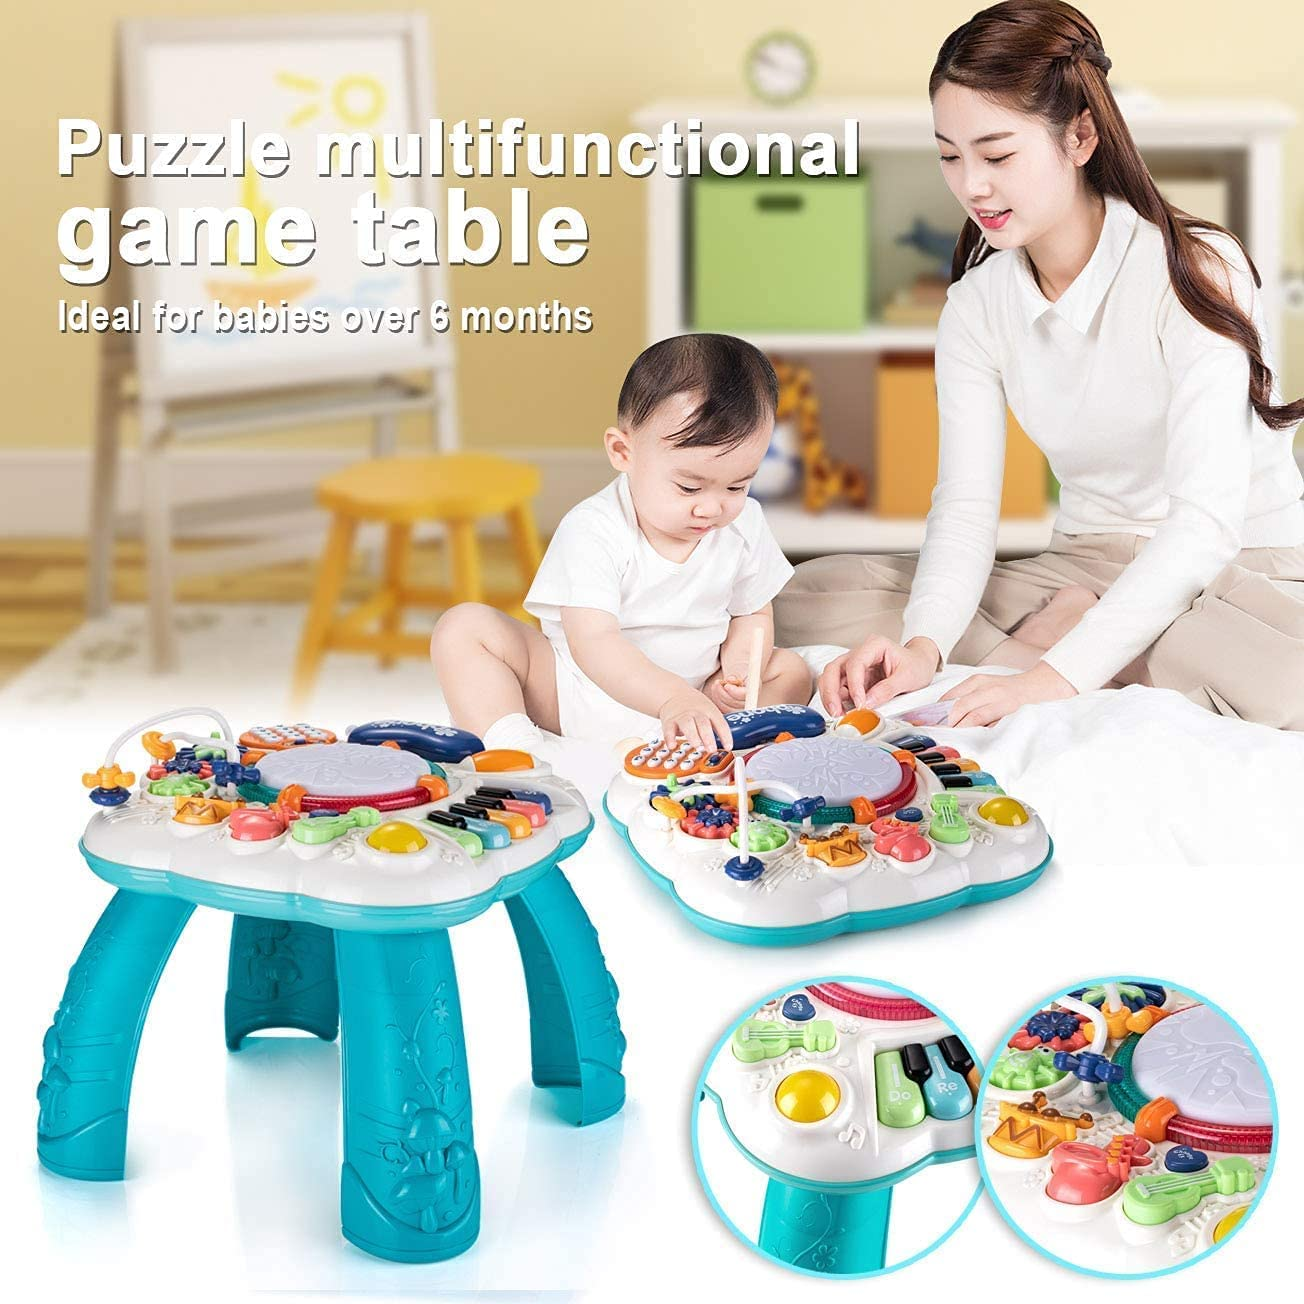 THISMY Learn and Groove Musical Table - Mum and baby with the multifunctional game table